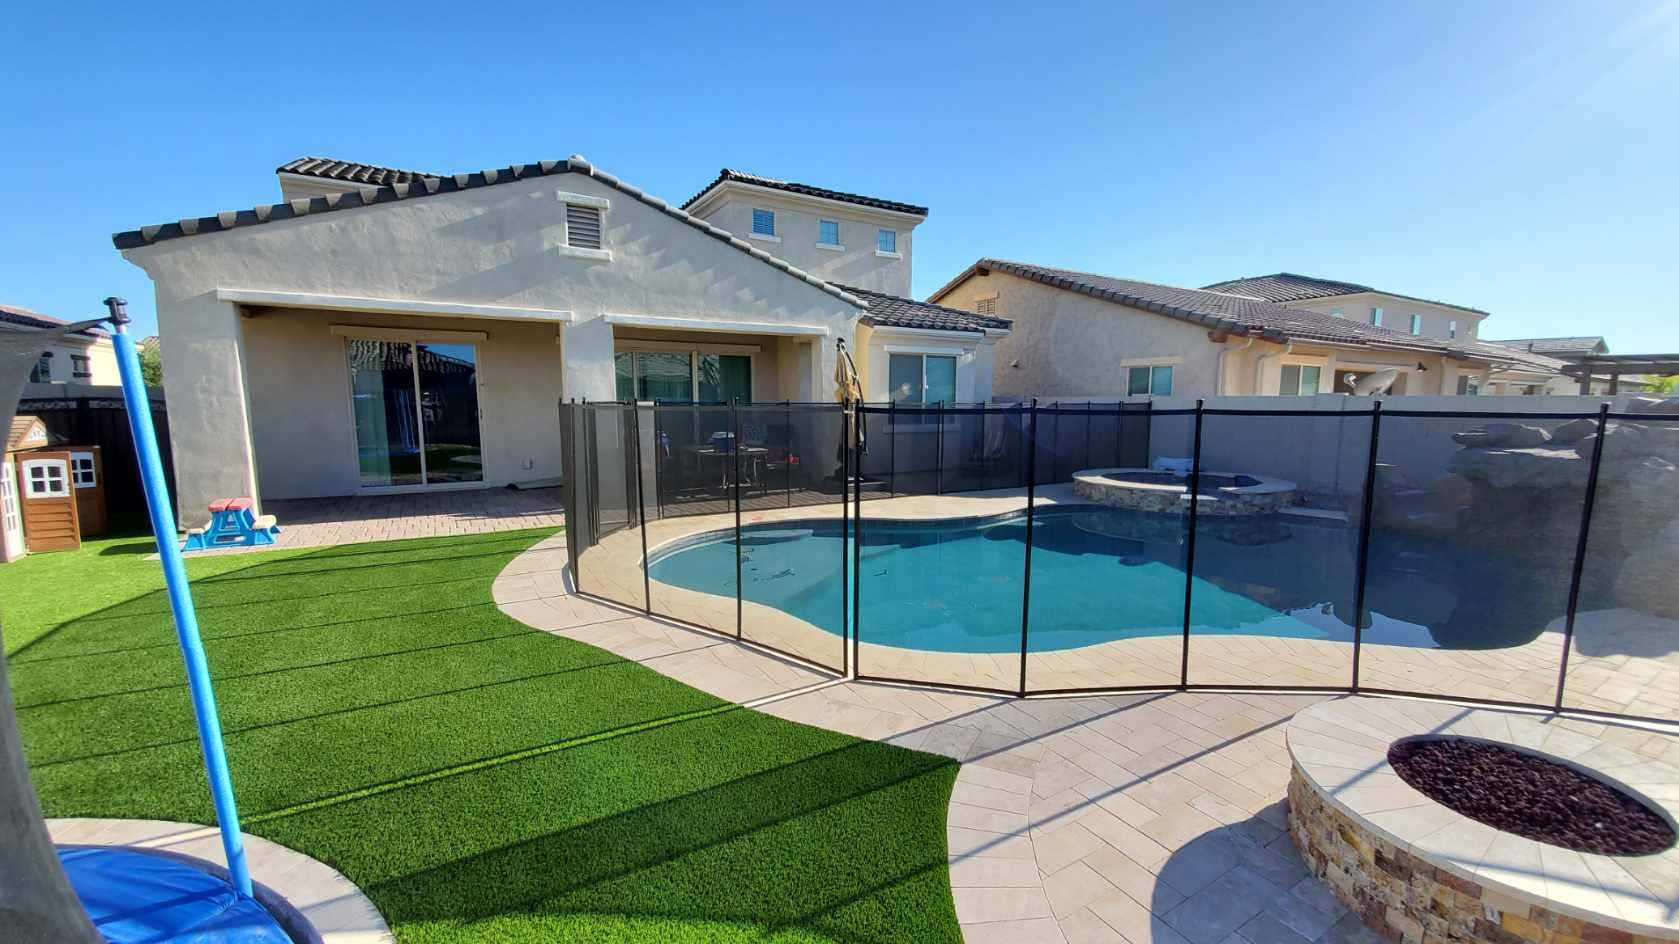 mesh fence around pool and spa